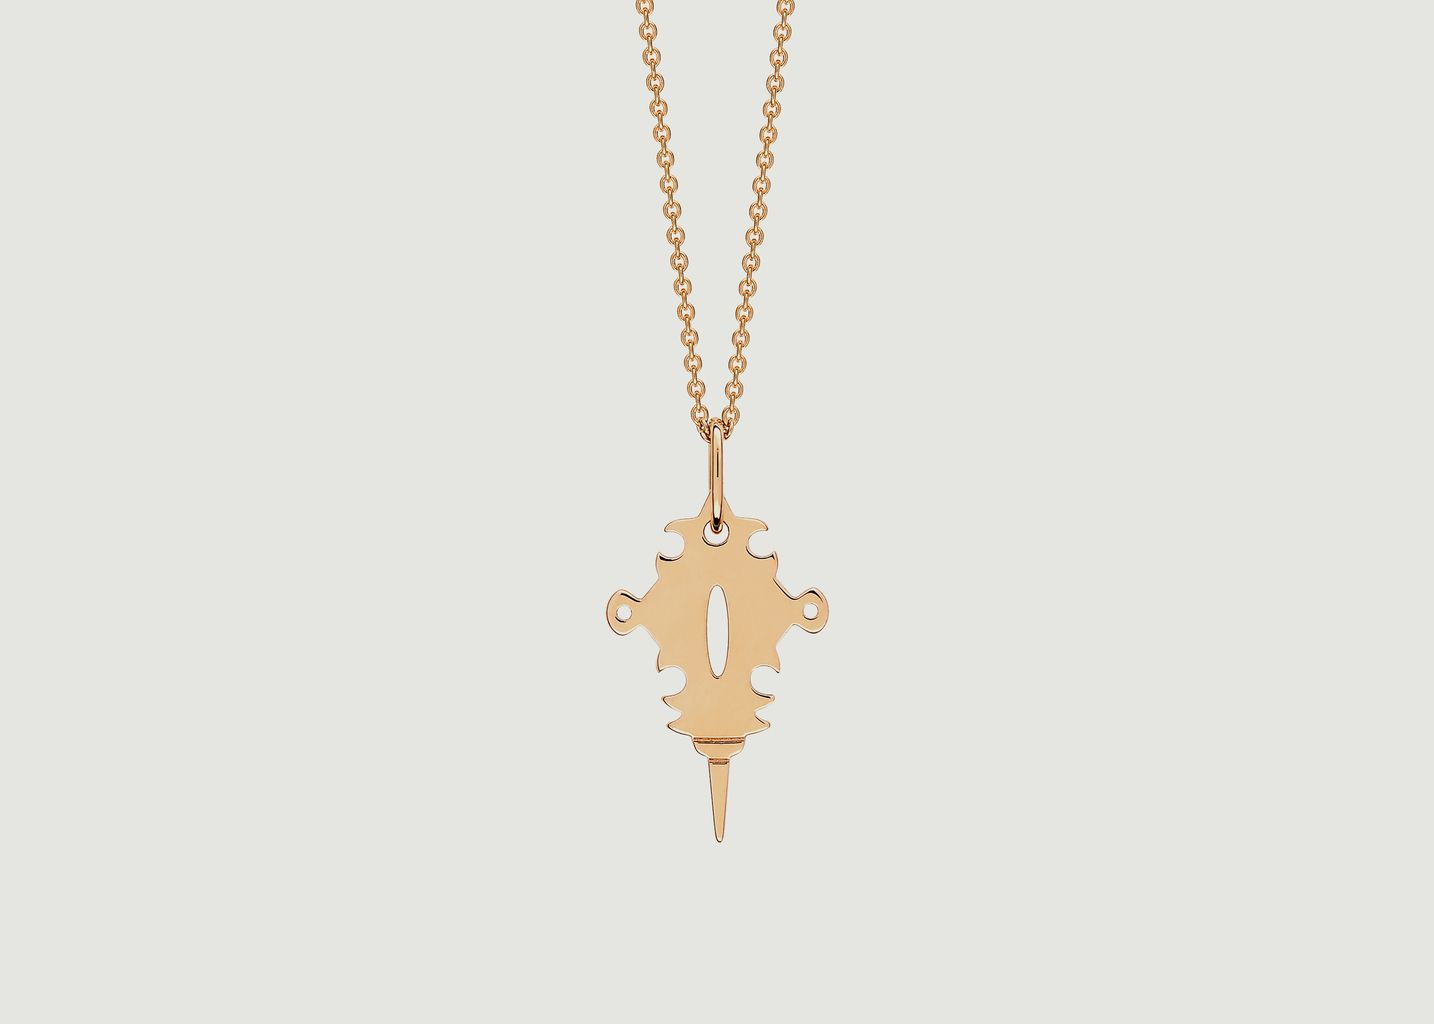 Mini Tanger Necklace - Ginette NY